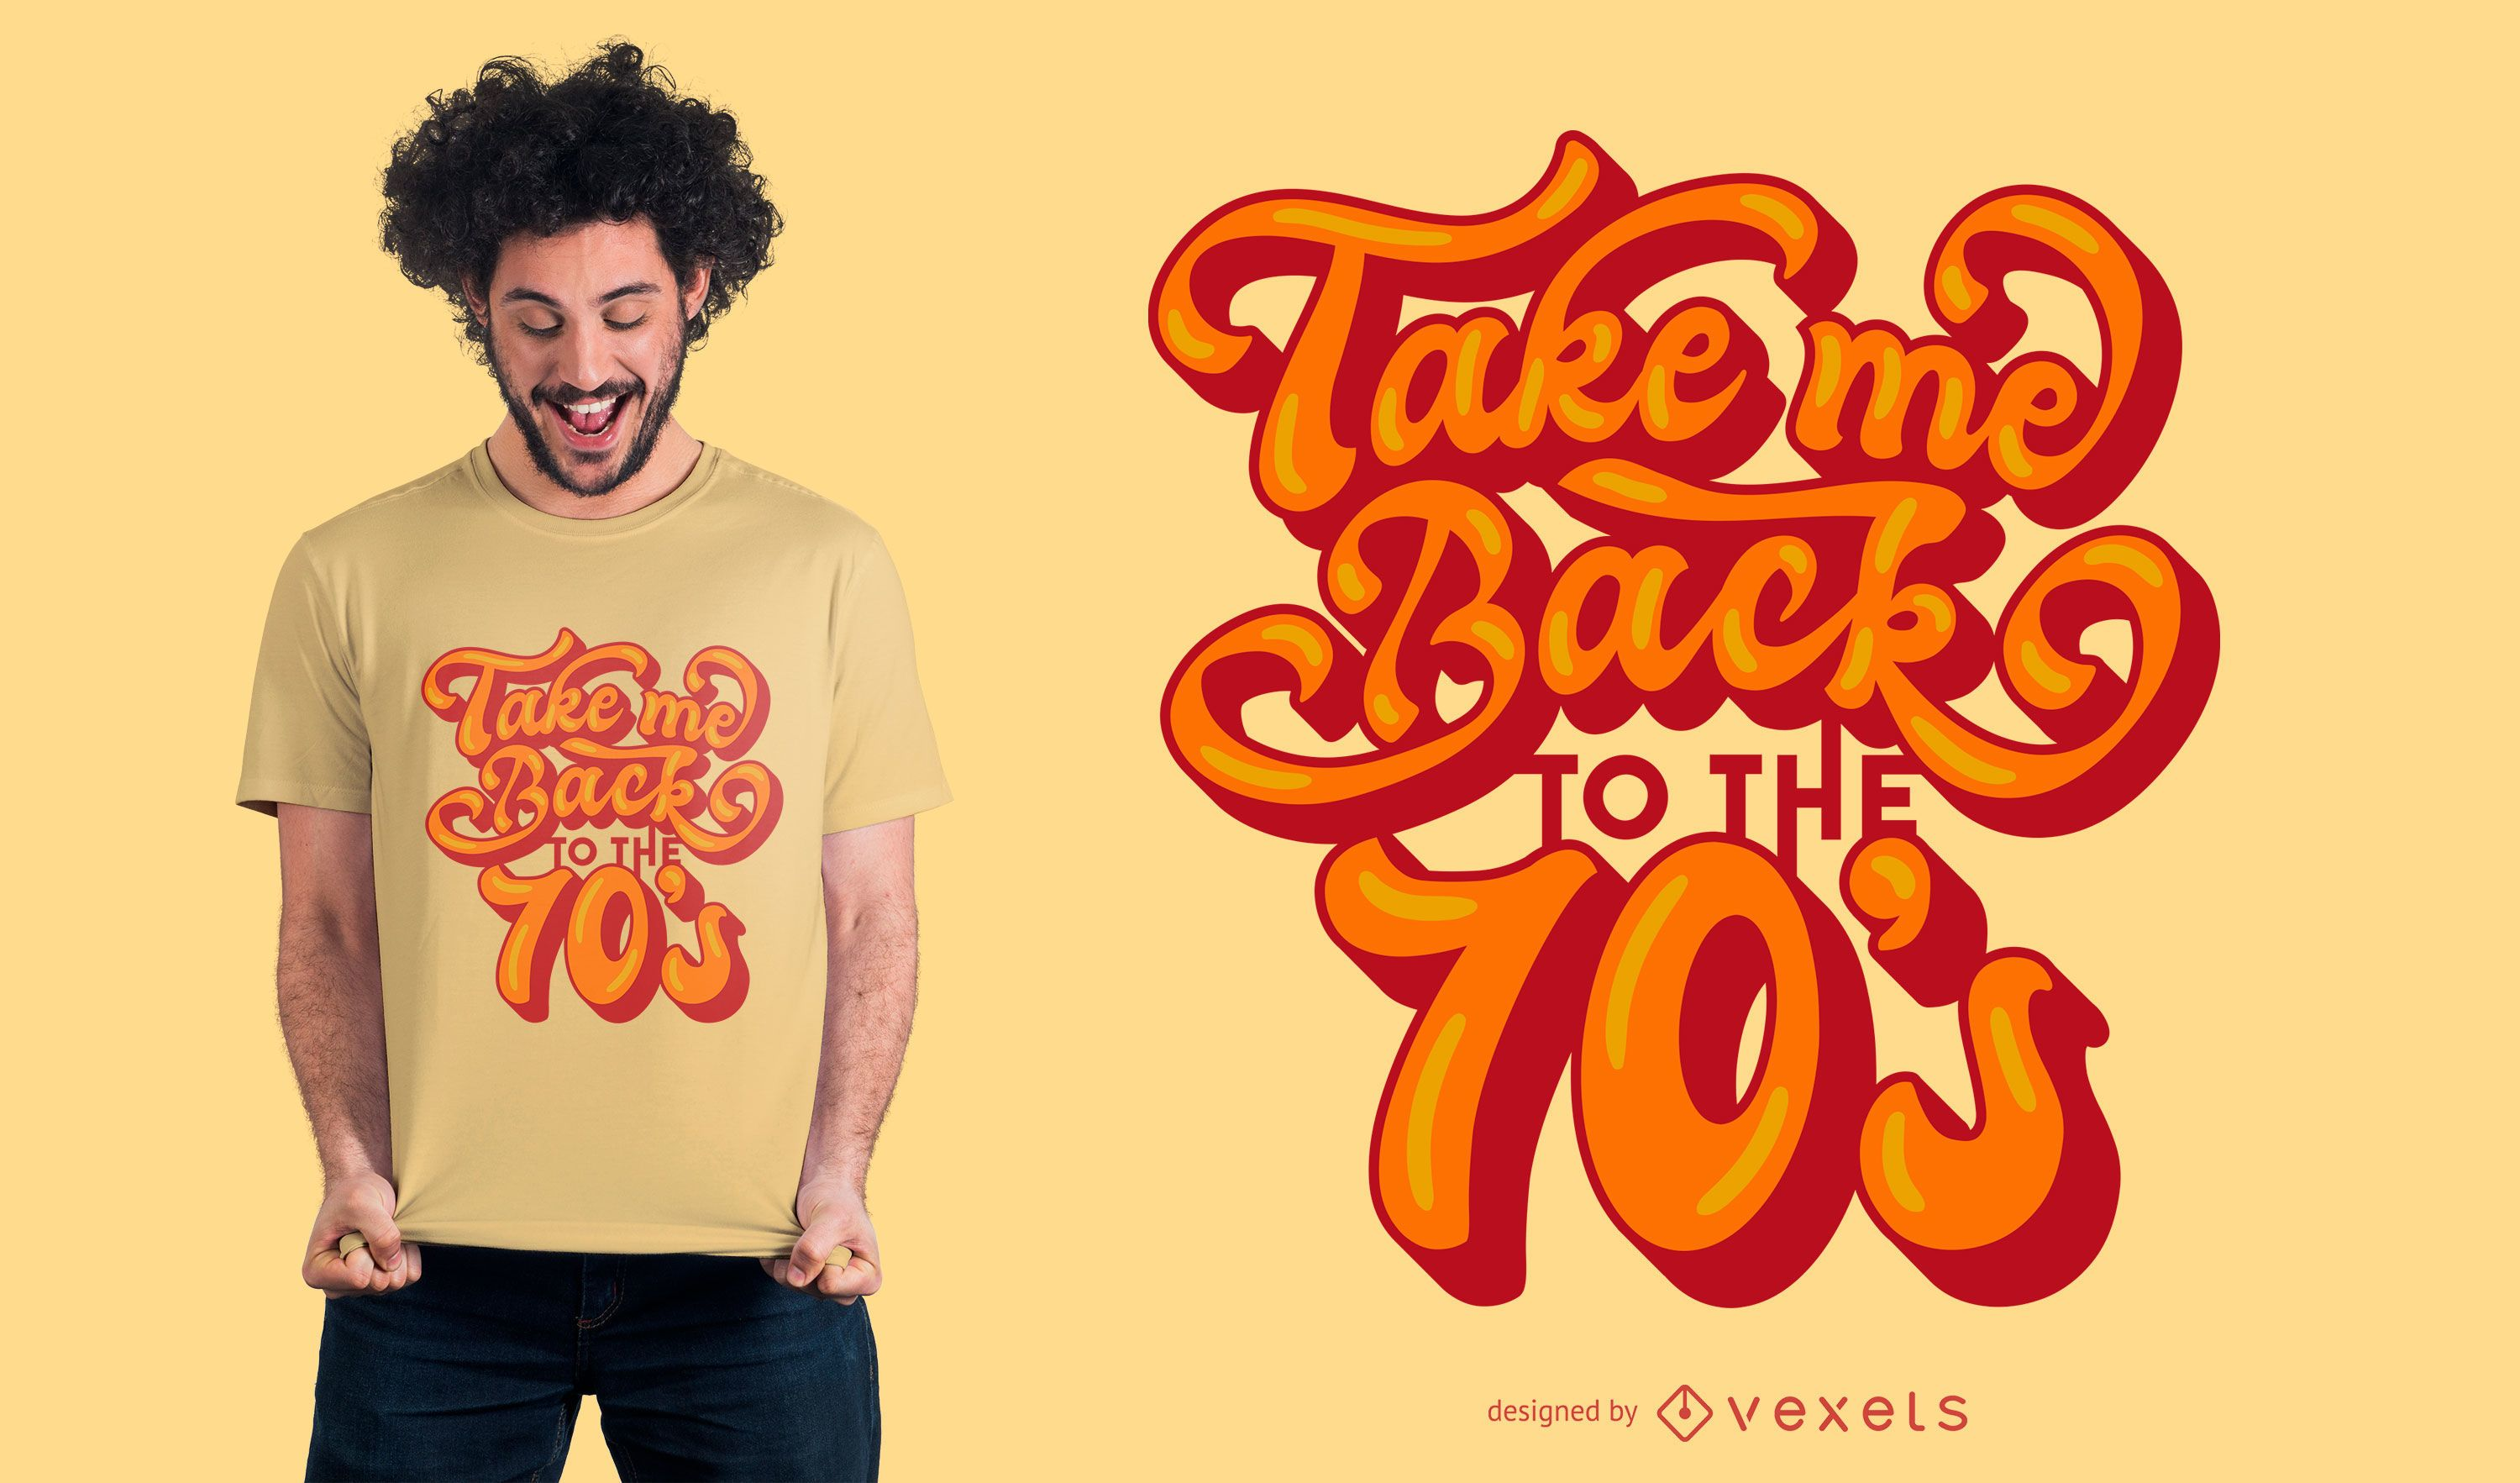 70s retro quote lettering t-shirt design